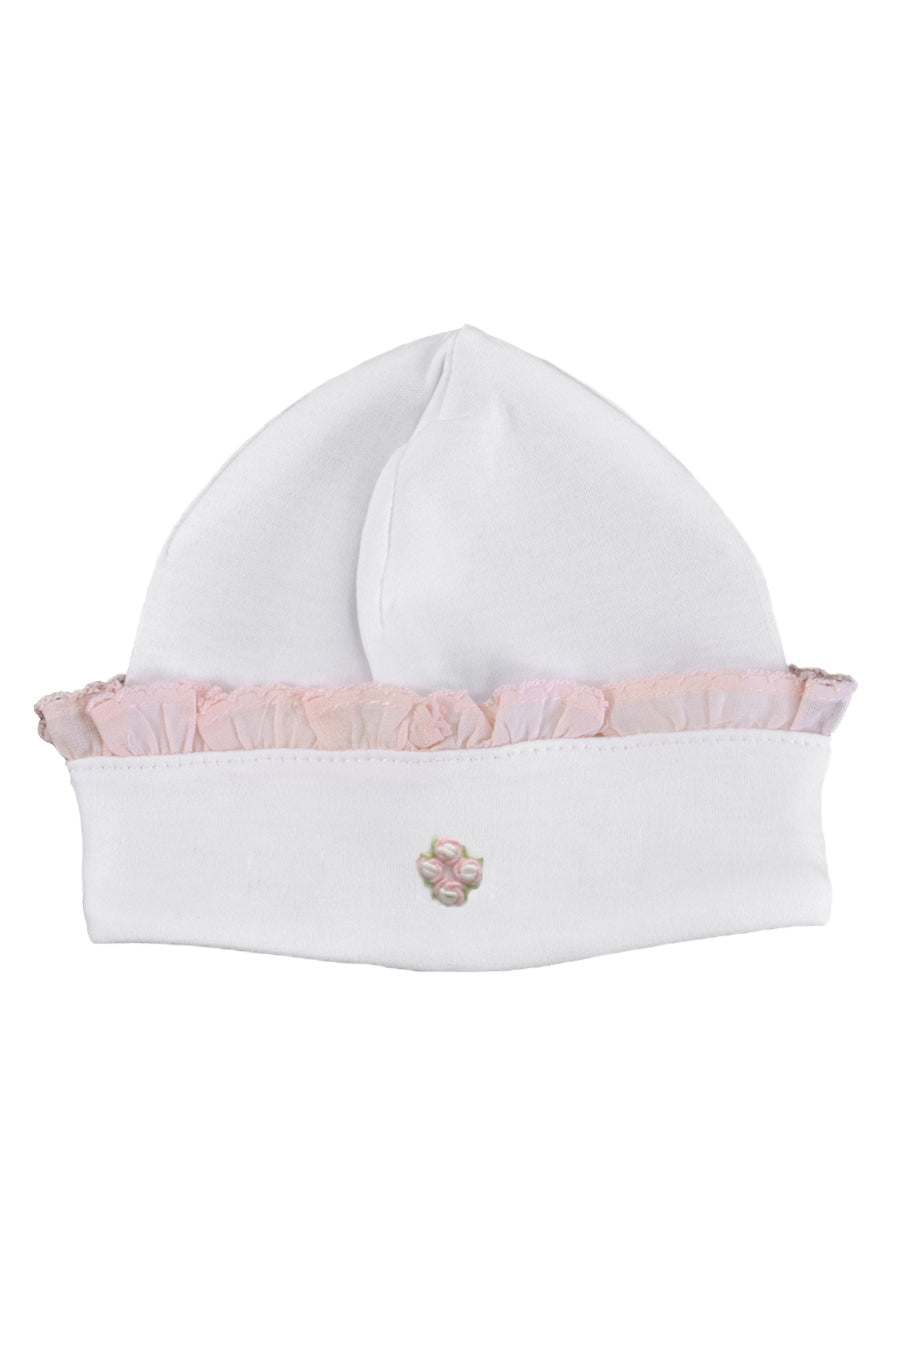 Baby Girl's Brielle Pima Cotton Hat - Little Threads Inc. Children's Clothing